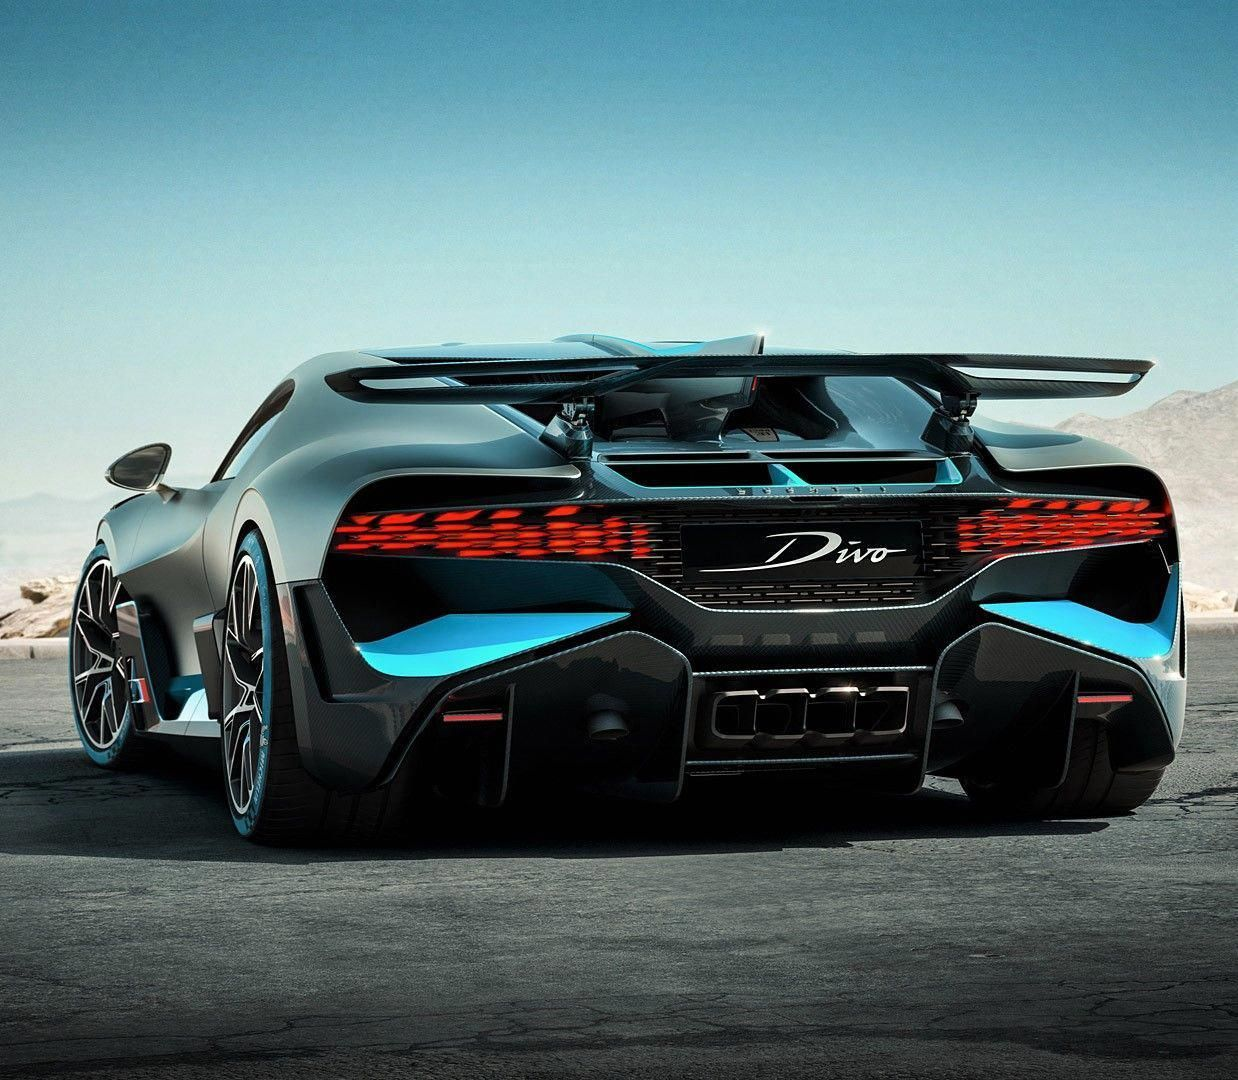 2019 Bugatti Divo The Man The Newest And Fastest Sports Car Luxury Sports Cars Are High Speed Cars Like The Following Fast Sports Car Bugatti Cars Bugatti